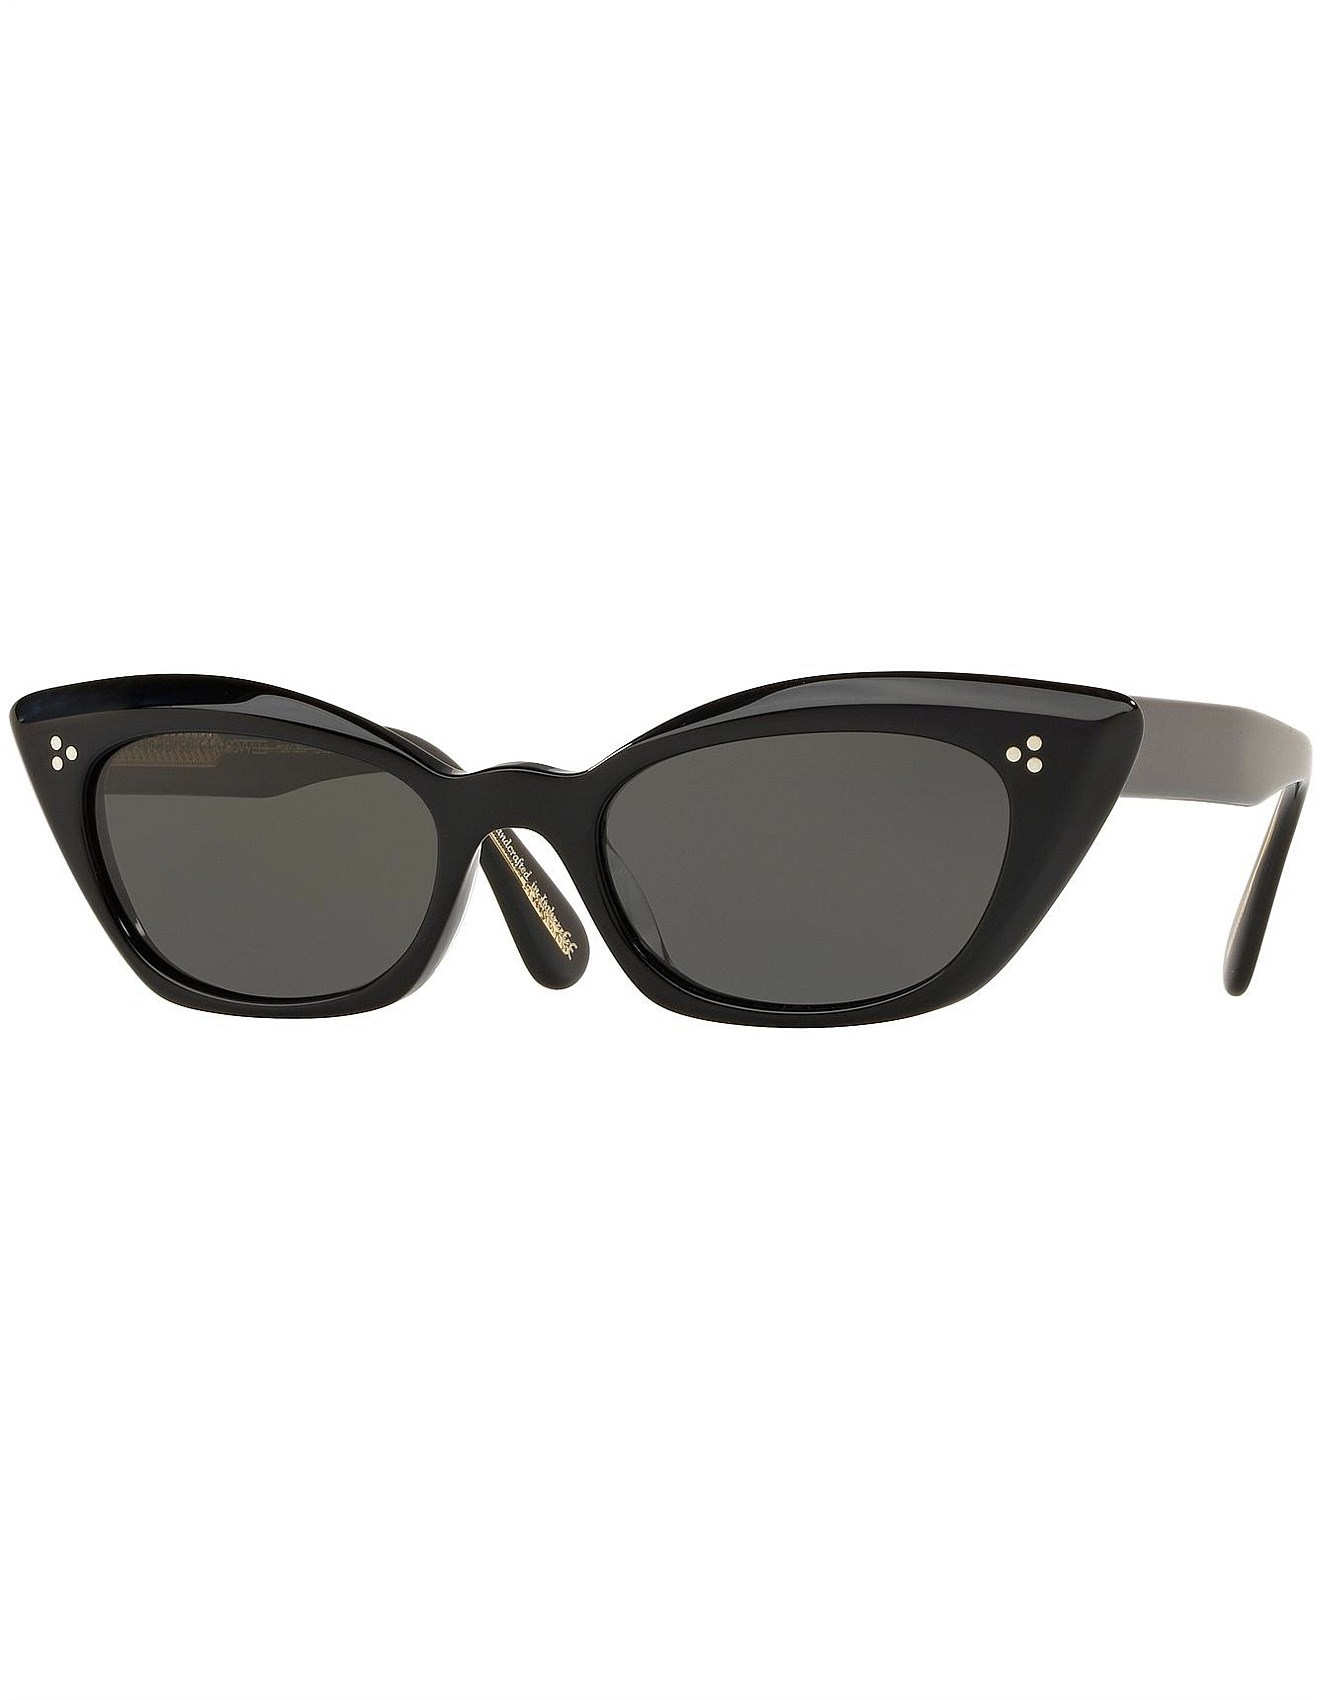 6d7ab596f35 Women s Cateye Sunglasses